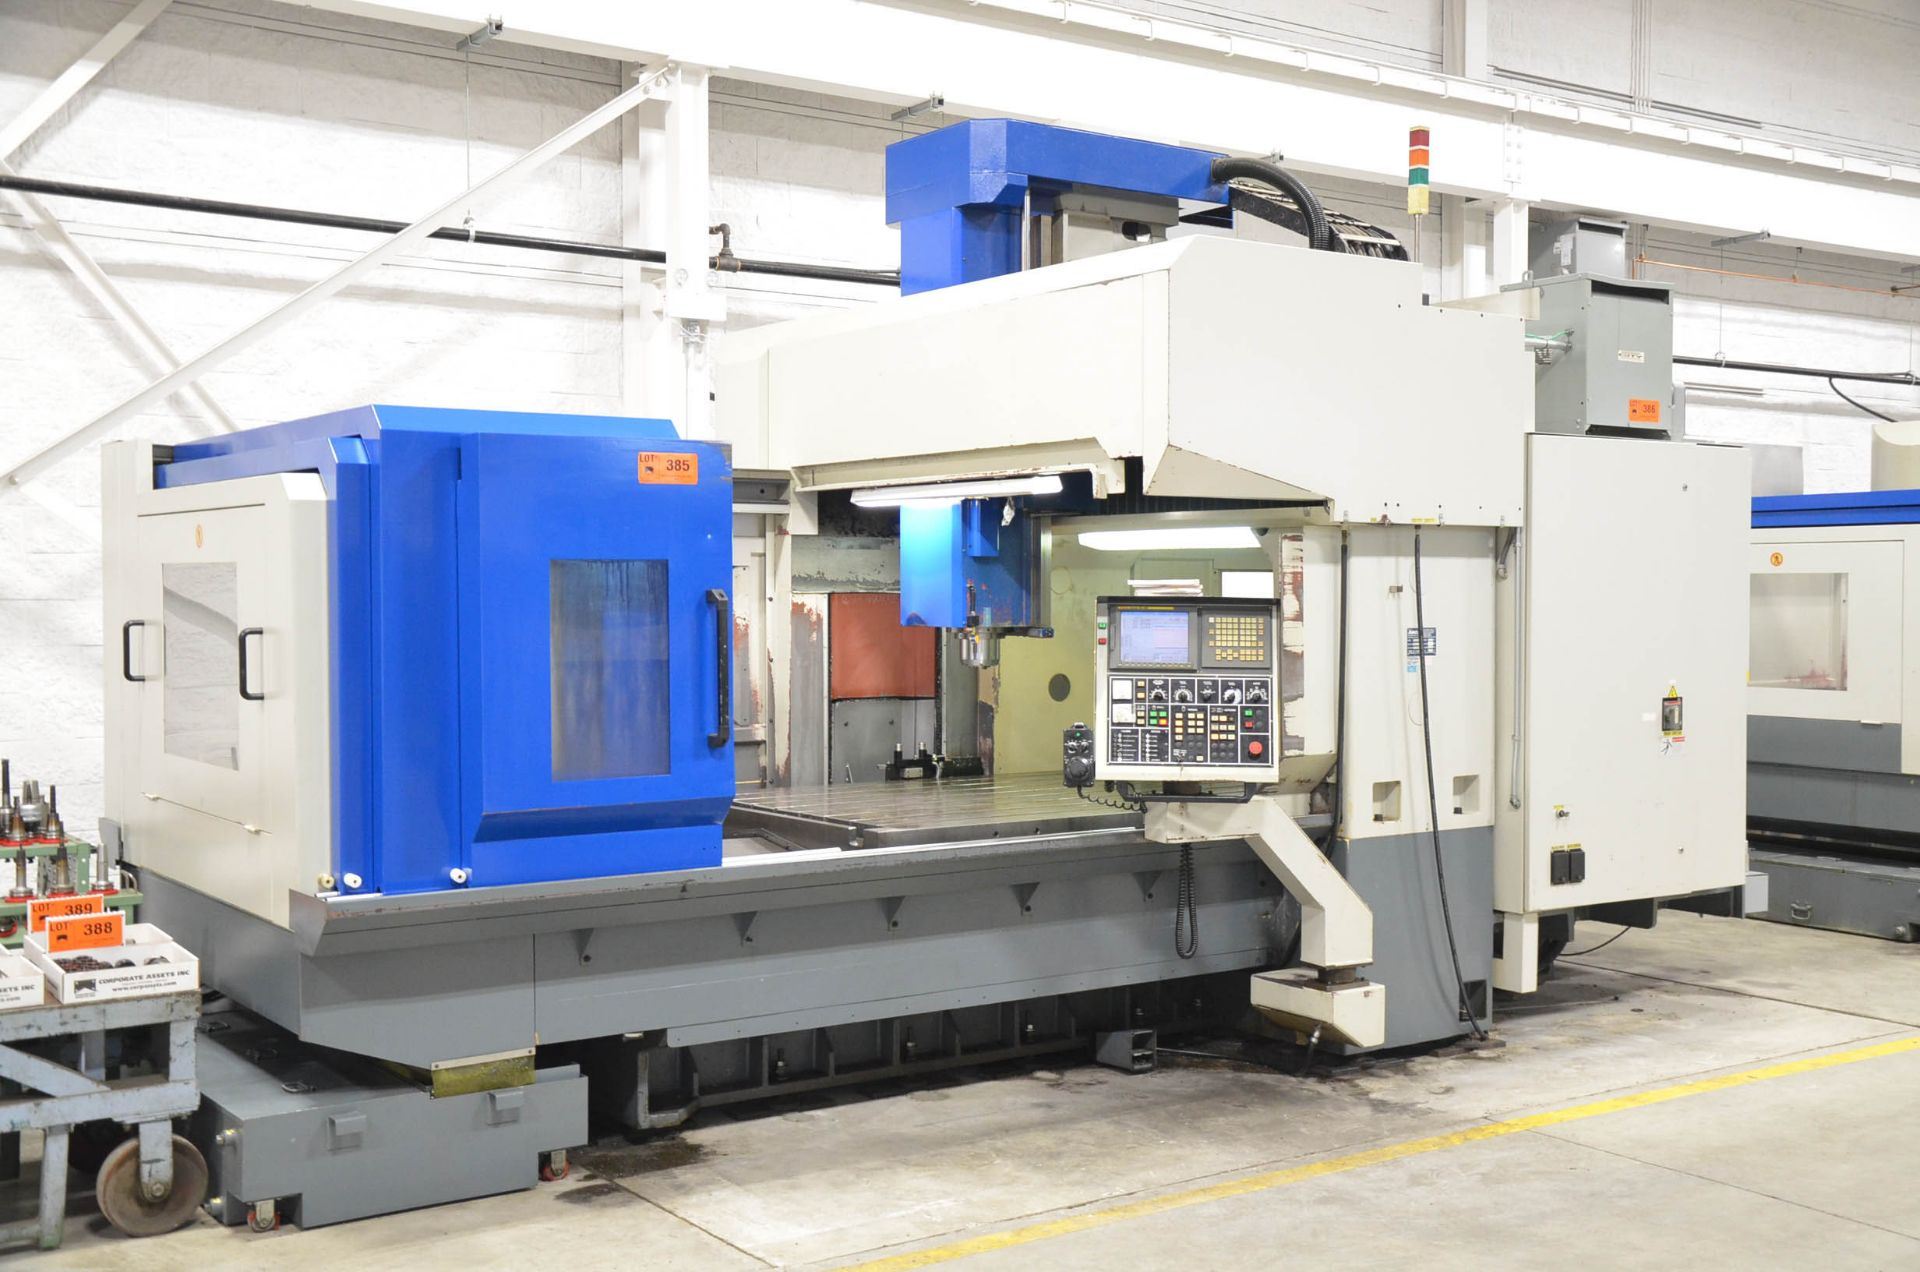 AWEA (2005) SP2016HSS GANTRY-TYPE CNC VERTICAL MACHINING CENTER WITH FANUC SERIES 18I-MB CNC - Image 2 of 11